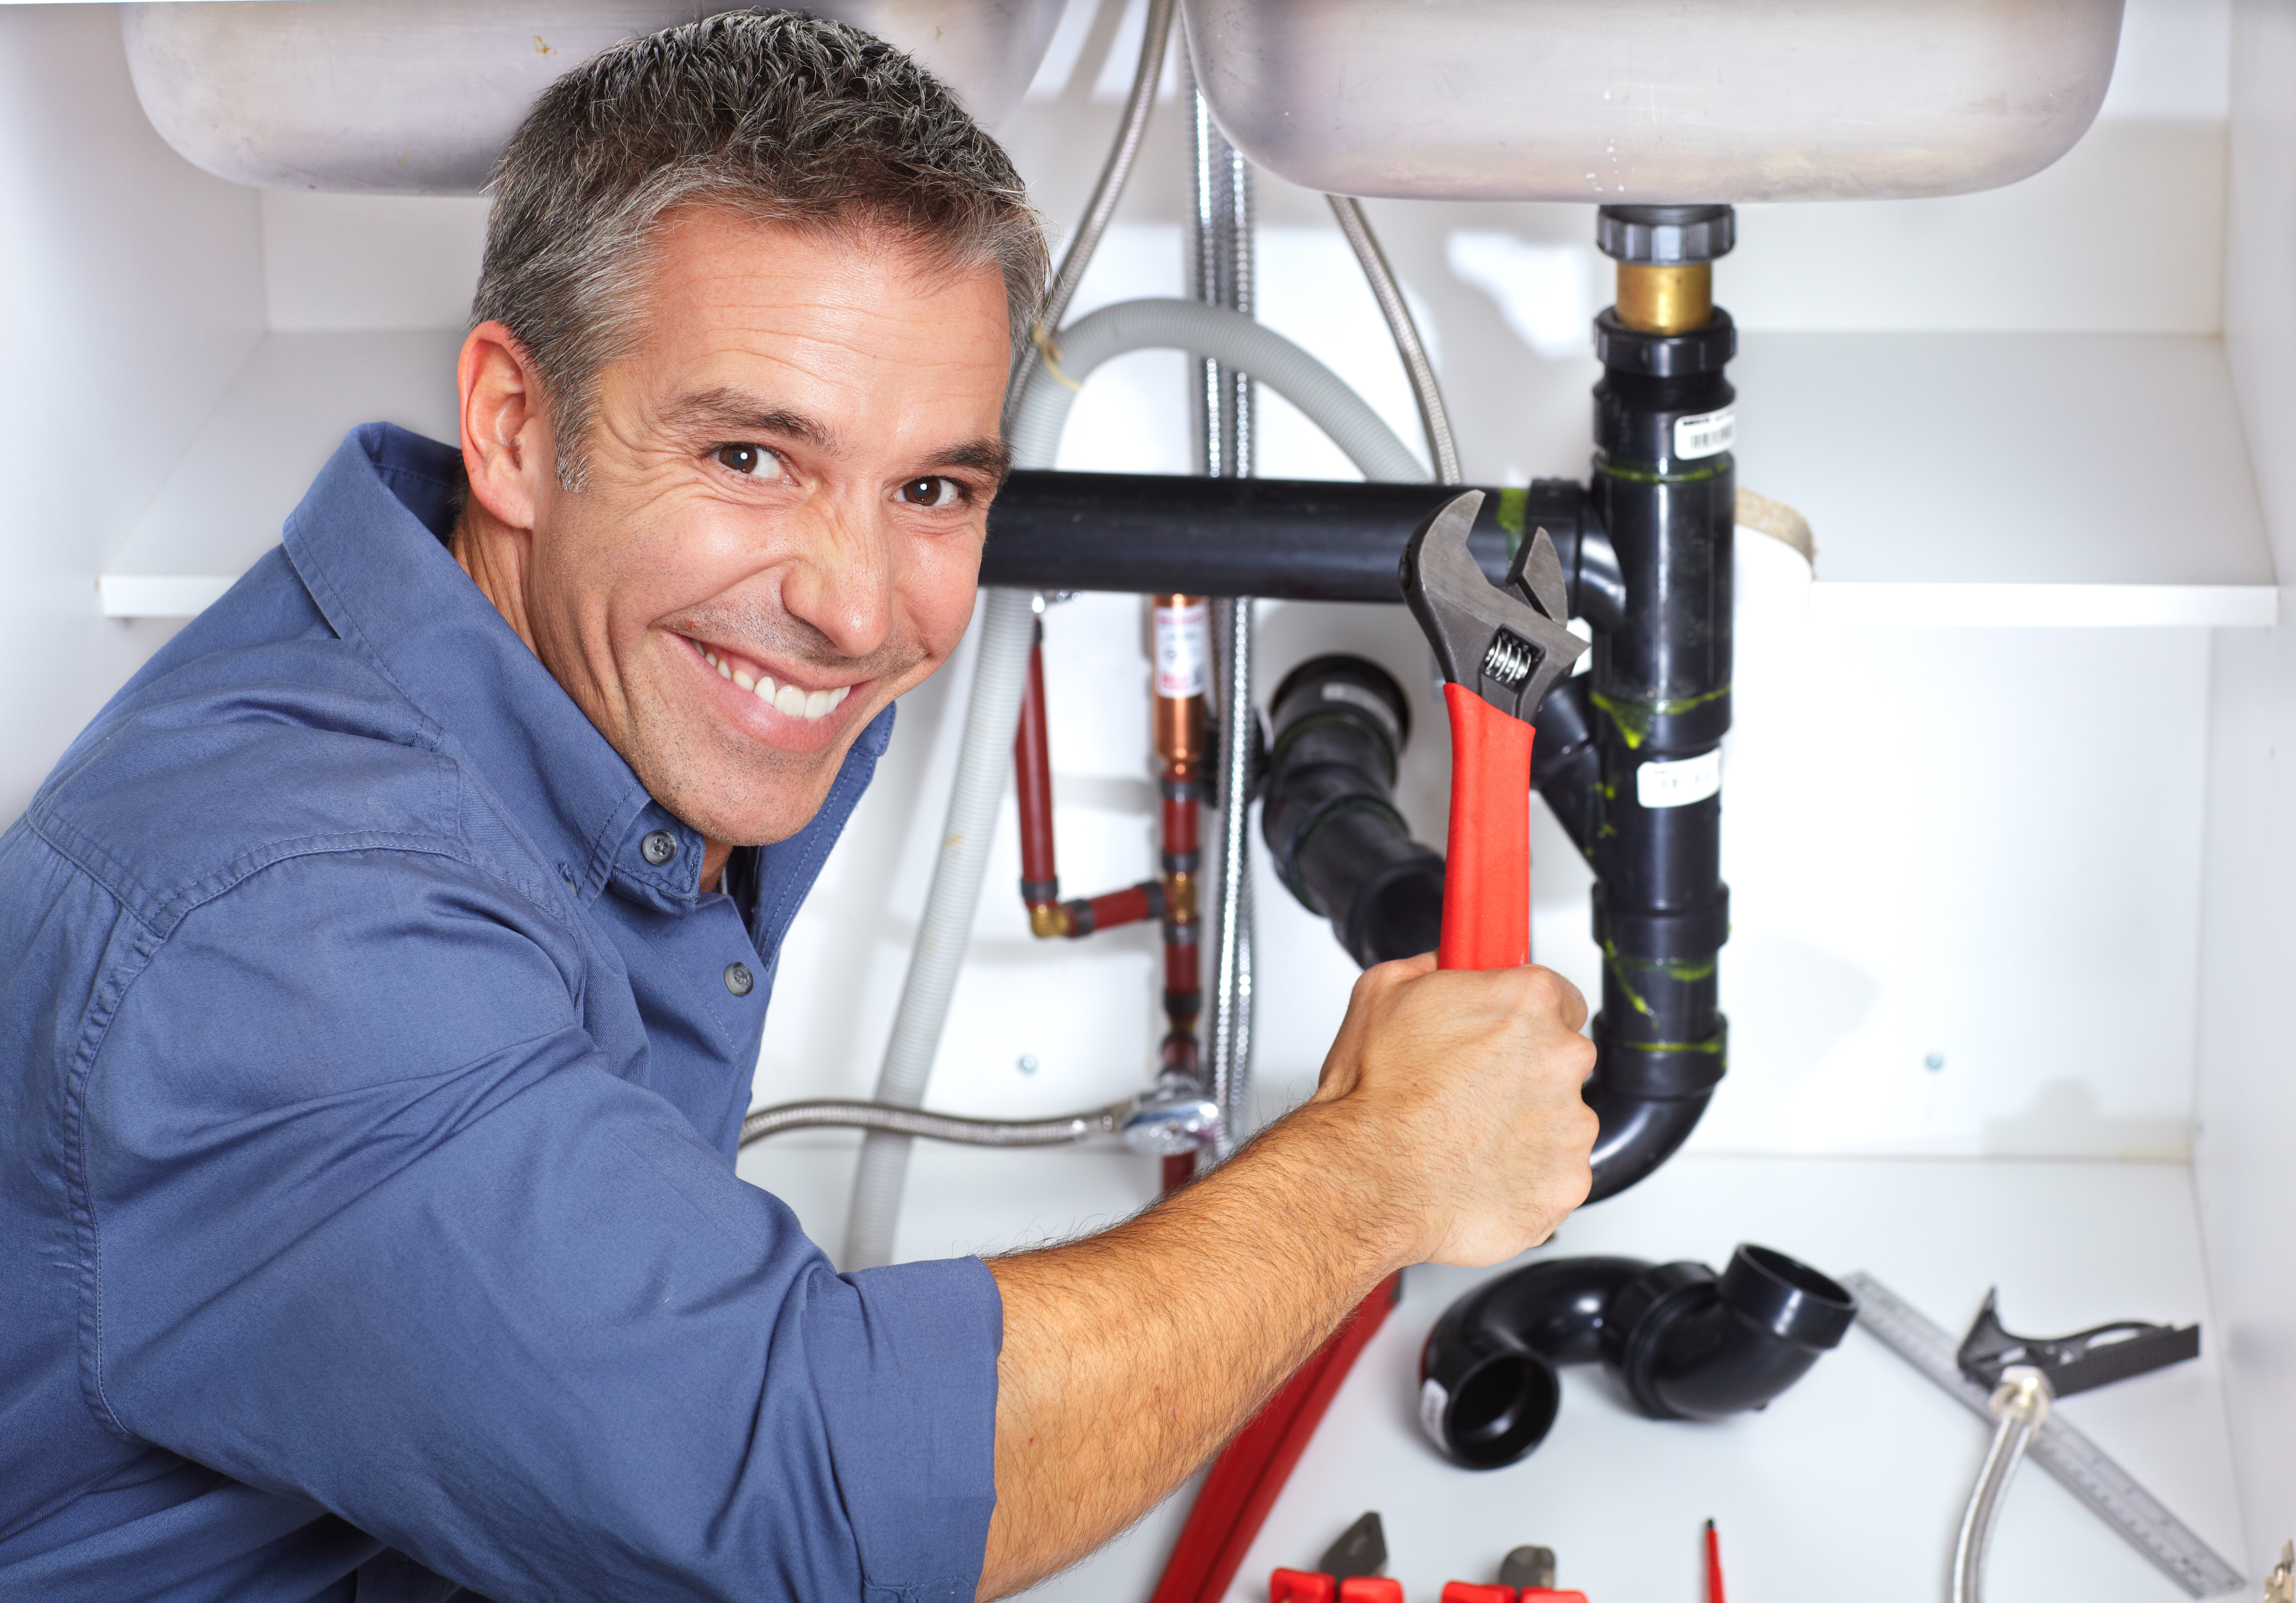 Plumbers Construction Industry Scheme Kg Accountants Blog